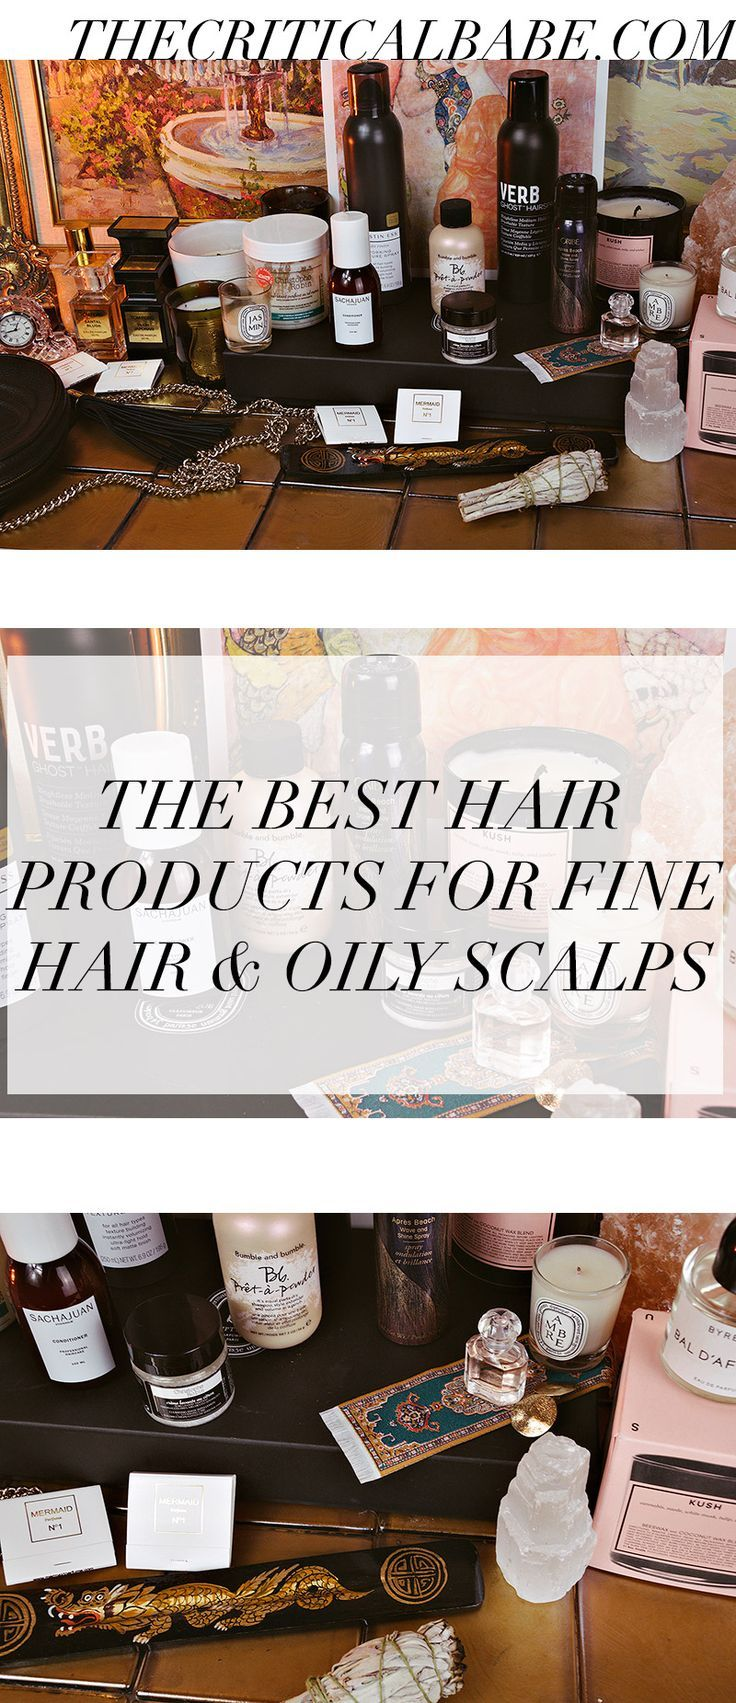 If you have an oily scalp, fine hair, or both, you know the struggle to keep your hair looking good without constantly washing it. I've tried every hair product under the sun and have some amazing recommendations for treating oily scalp and volumizing fine hair.#haircare#finehair#DIYhair#hairstyle#hairgoals